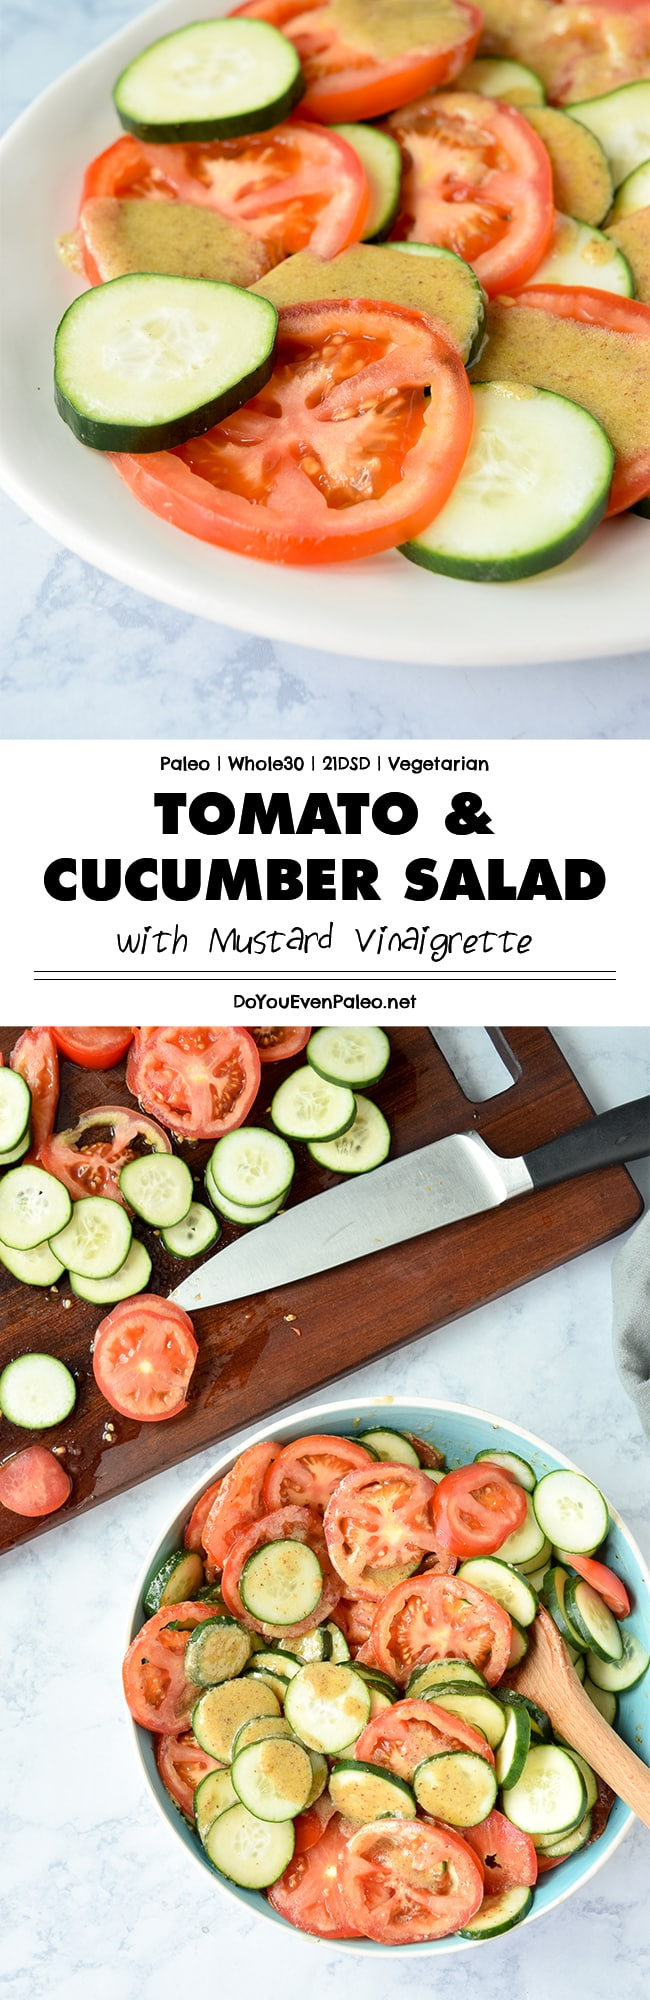 This Tomato & Cucumber Salad with Mustard Vinaigrette is the perfect healthy salad recipe for summer! With tomatoes, cucumbers, and a simple zesty vinaigrette to bring it all together, it's a gluten free, paleo, vegetarian, and Whole30 recipe you'll love. | DoYouEvenPaleo.net #paleo #glutenfree #doyouevenpaleo #whole30